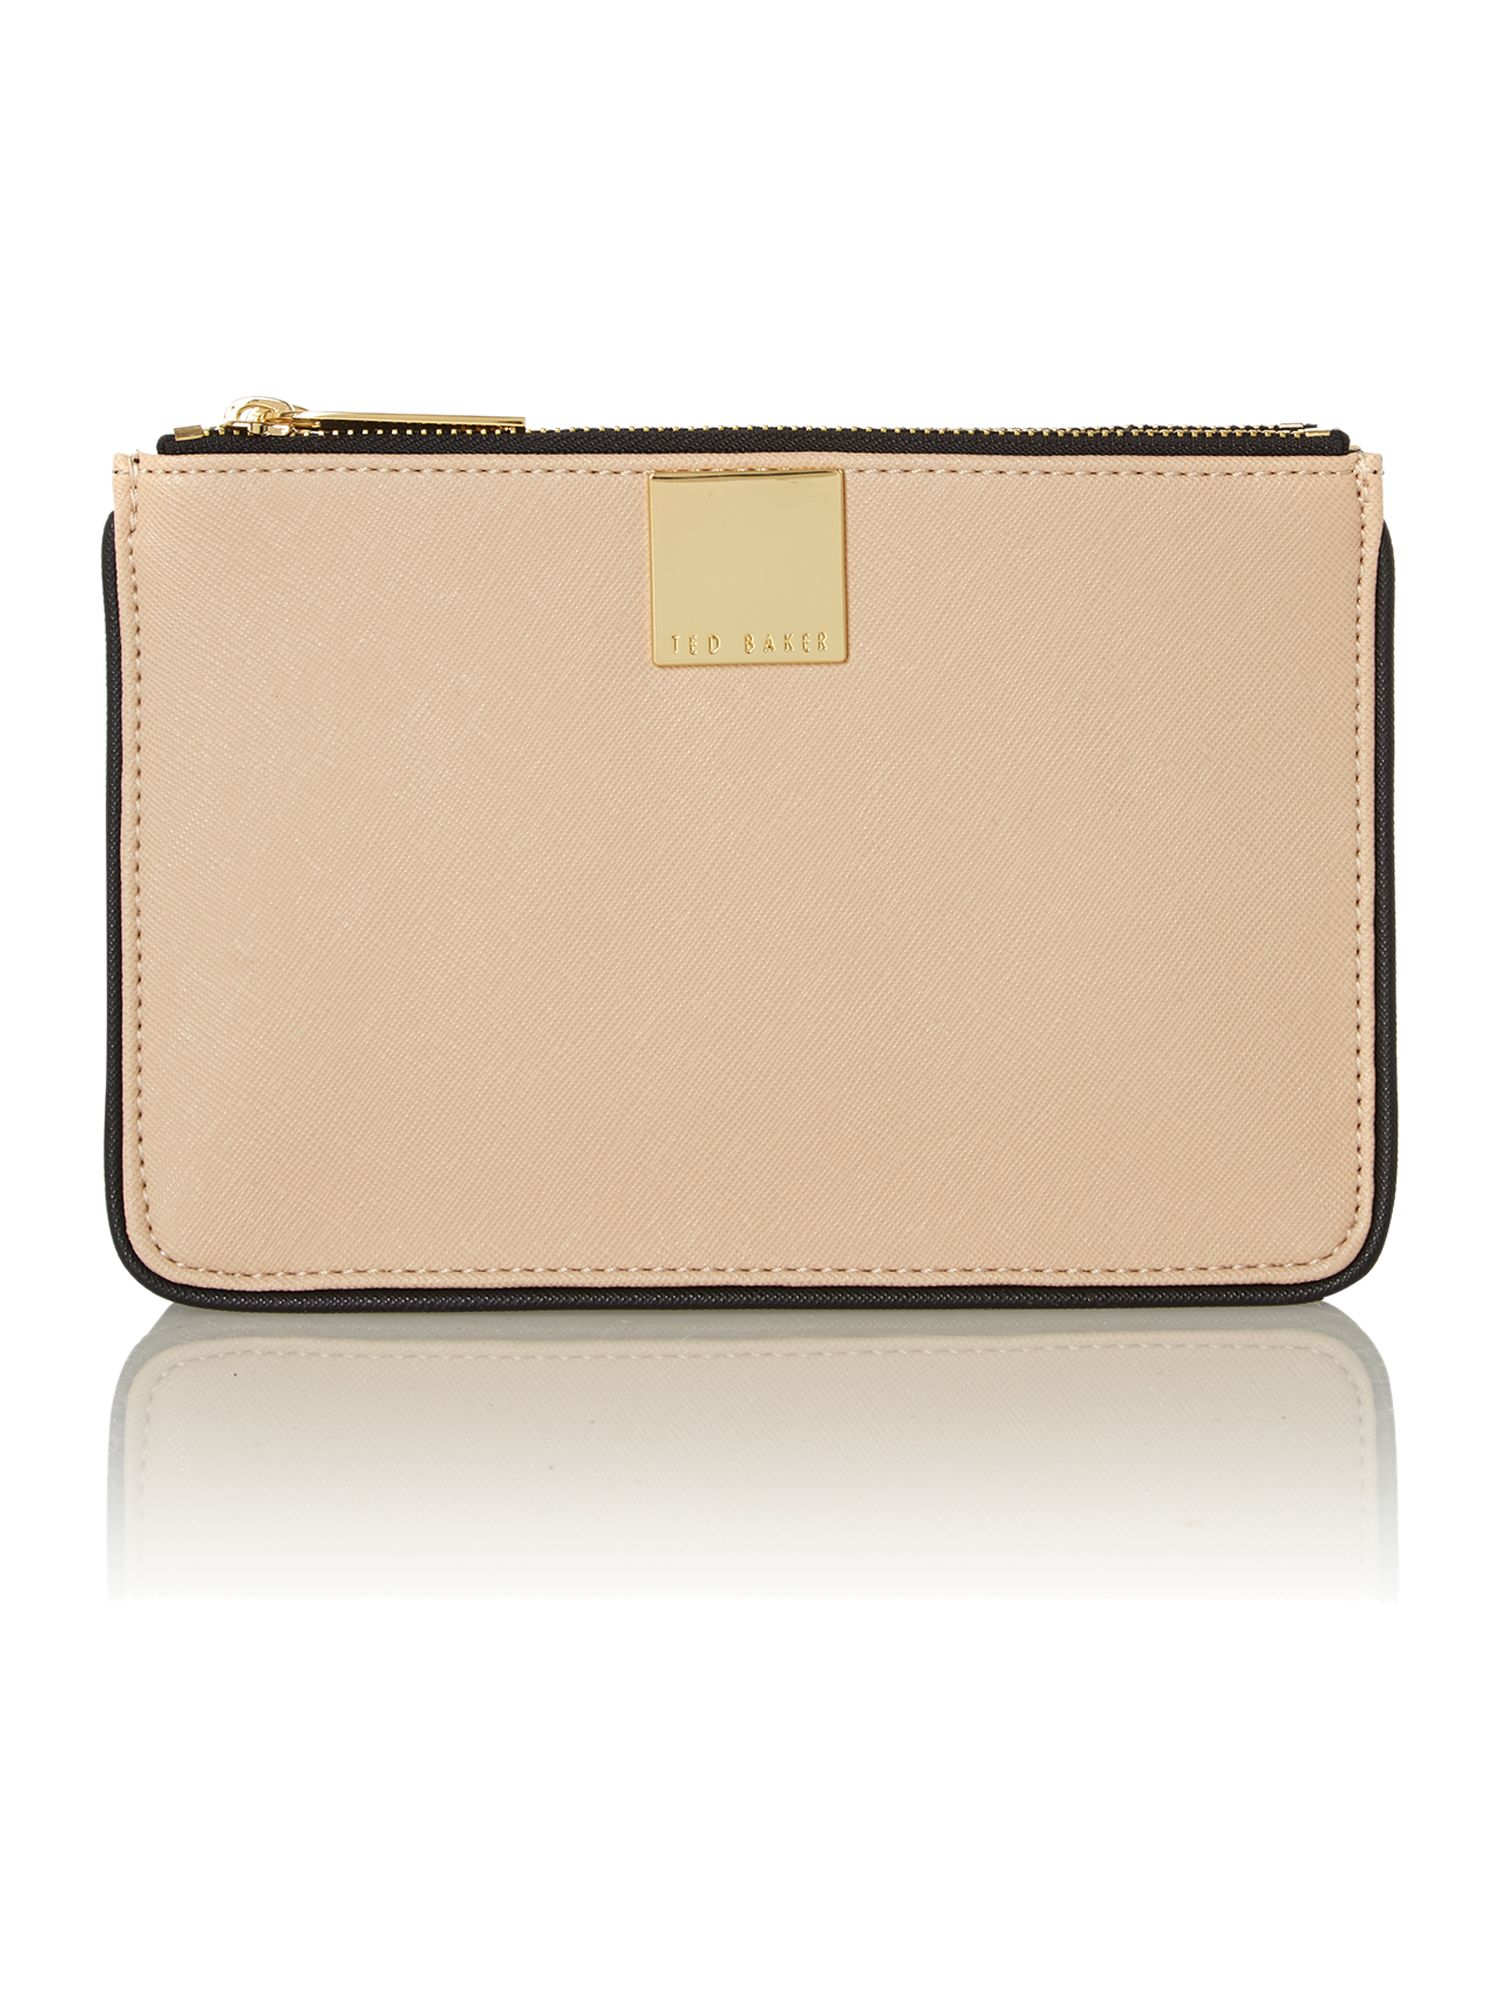 Neutral small saffiano cross body bag